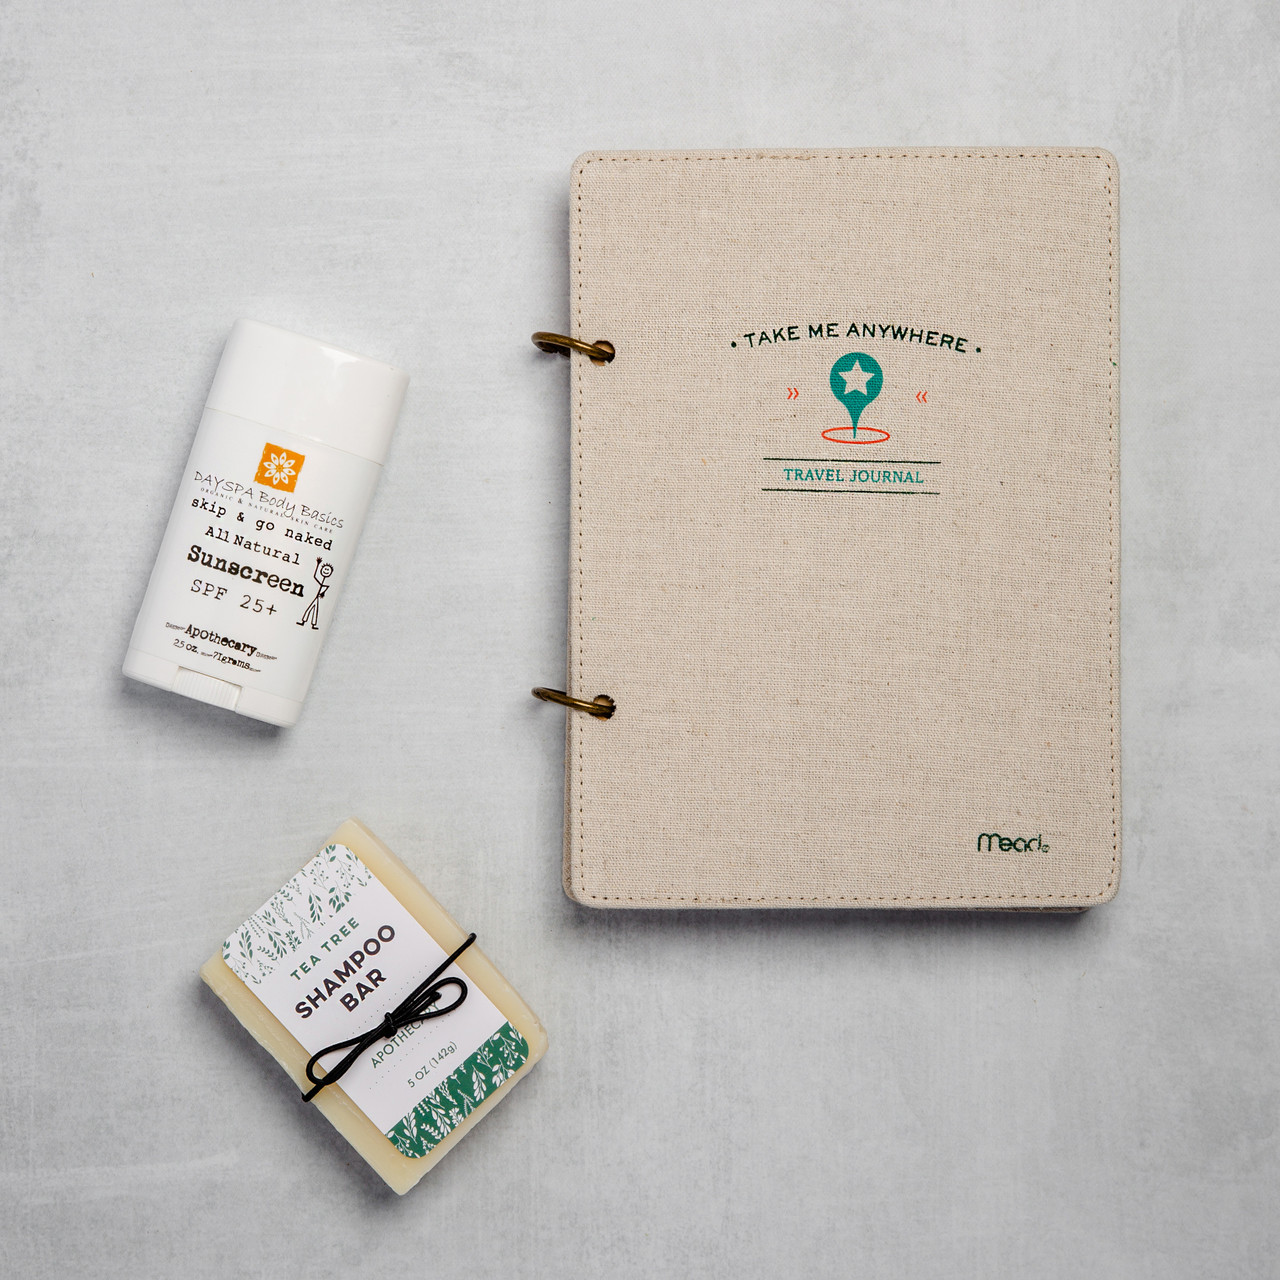 The Traveler - Take Me Anywhere Gift Set